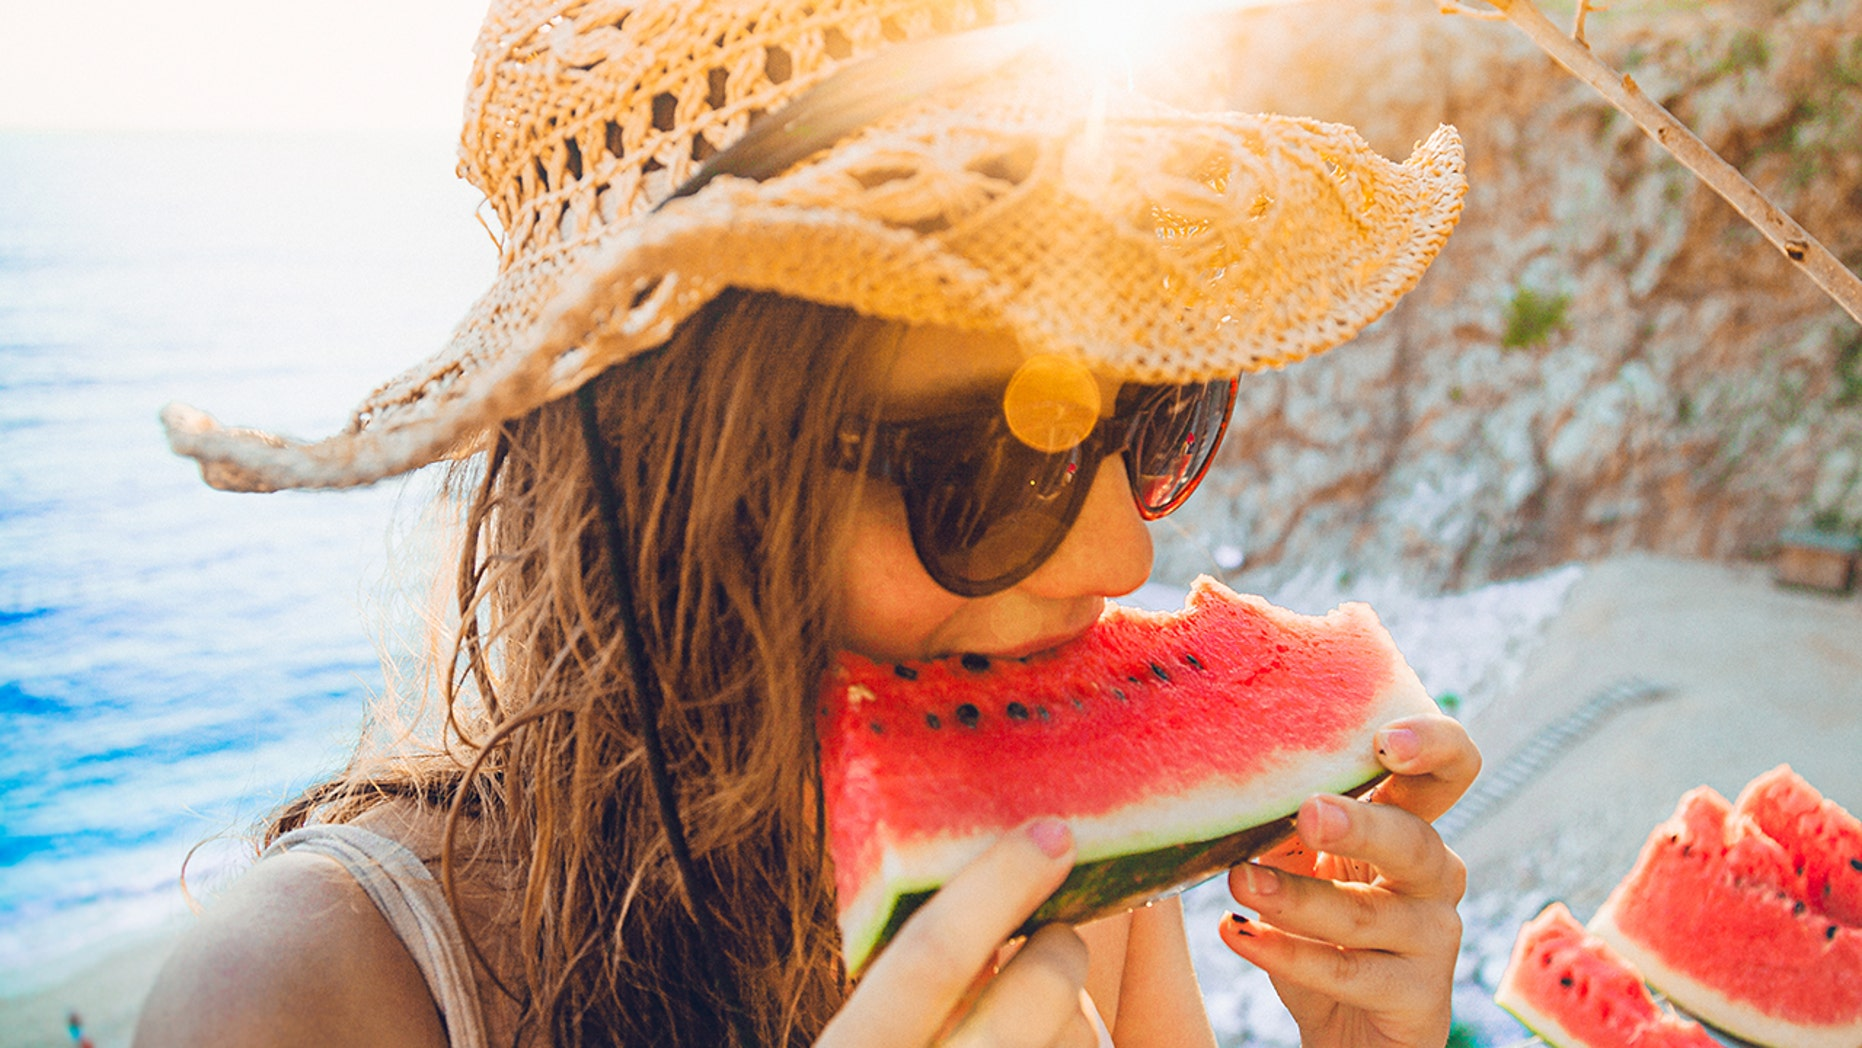 Follow these tips to pick the perfect melon.